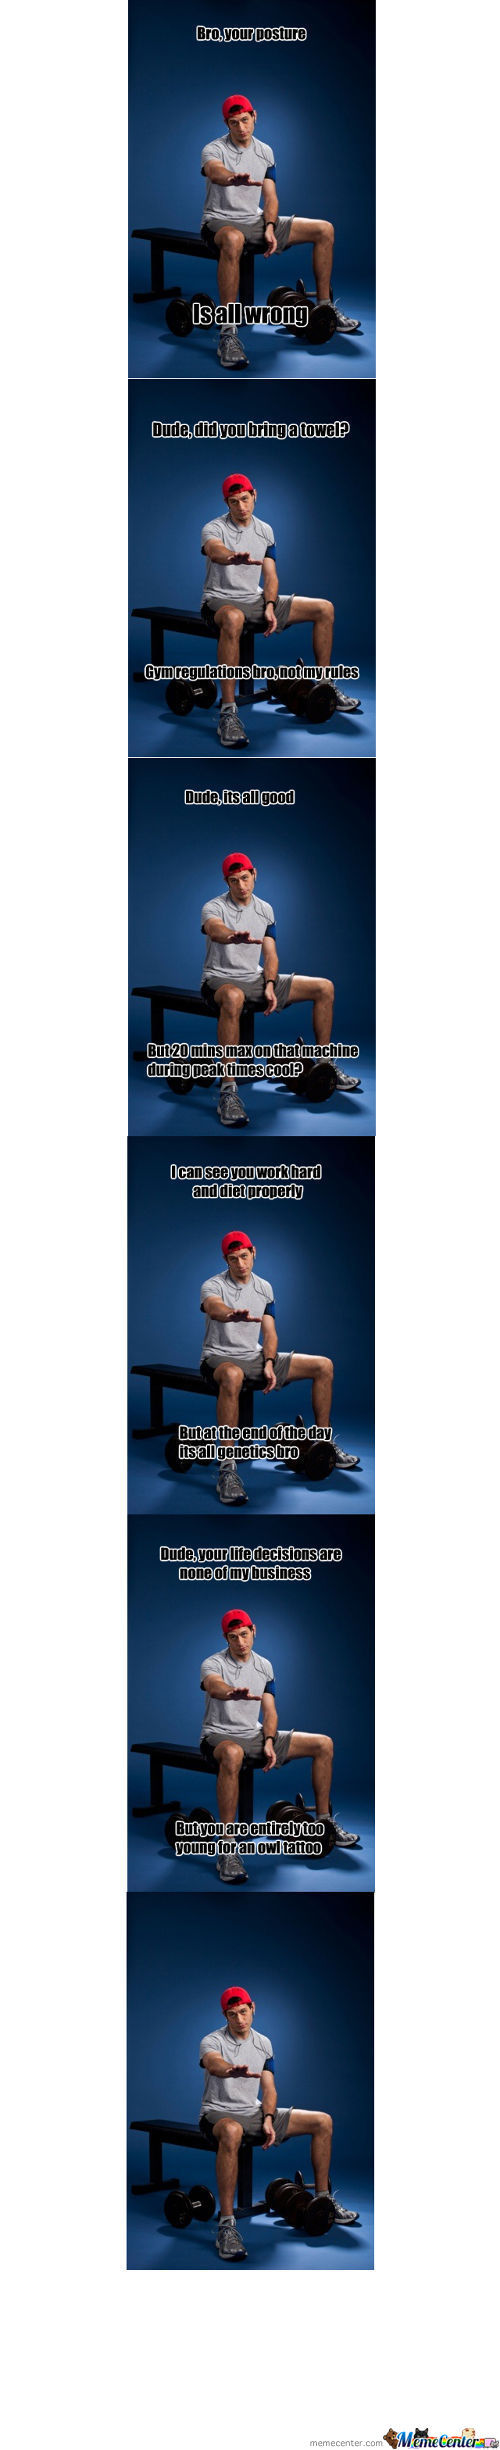 New Meme! Douchebag Gym Guy! Have A Go!